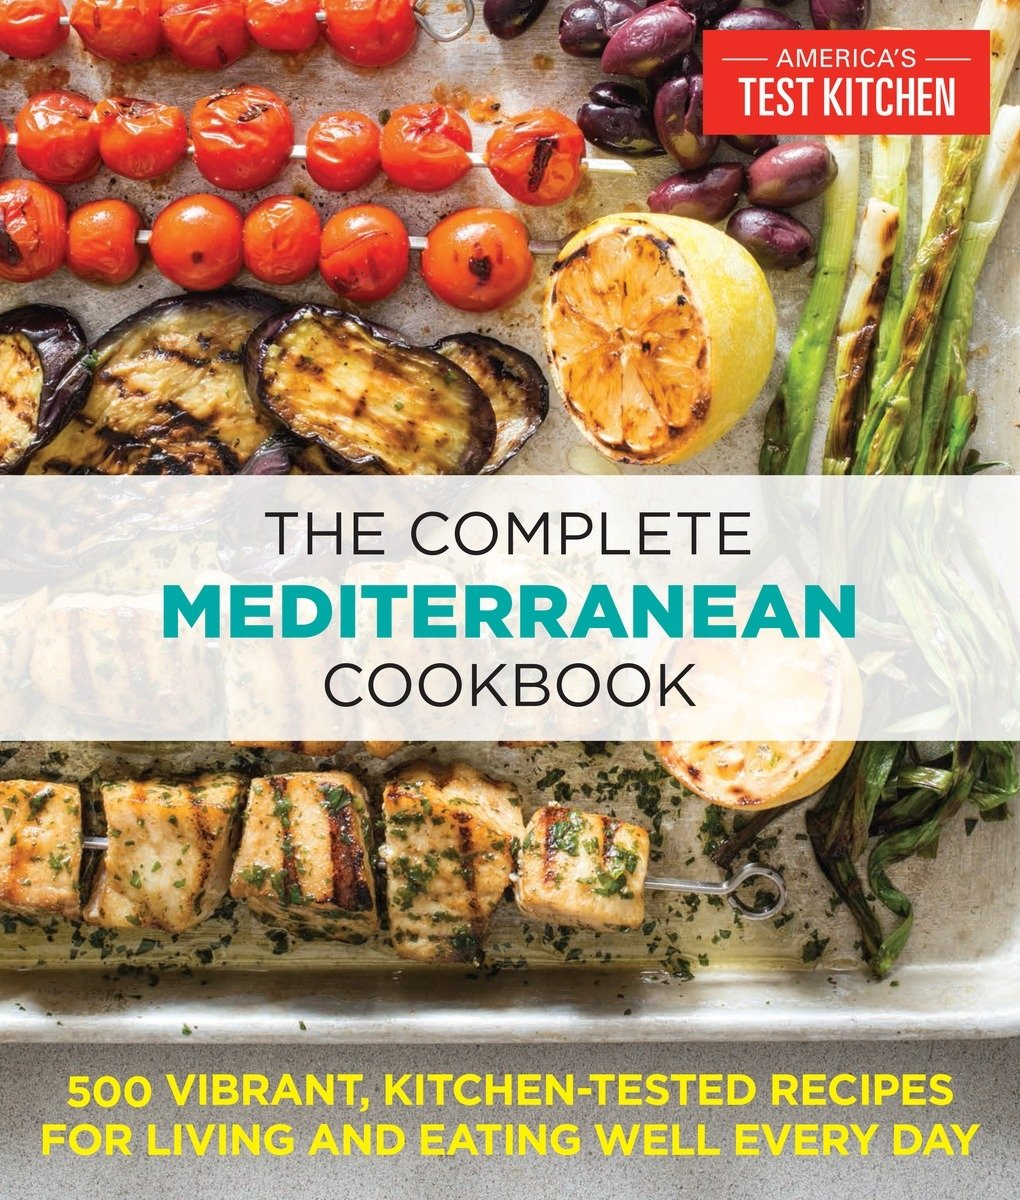 Complete Mediterranean Diet Cookbook 500 Vibrant Kitchen Tested Recipes For Living And Eating Well Every Day The Complete Atk Cookbook Series Amazon Co Uk Editors At America S Test Kitchen Books